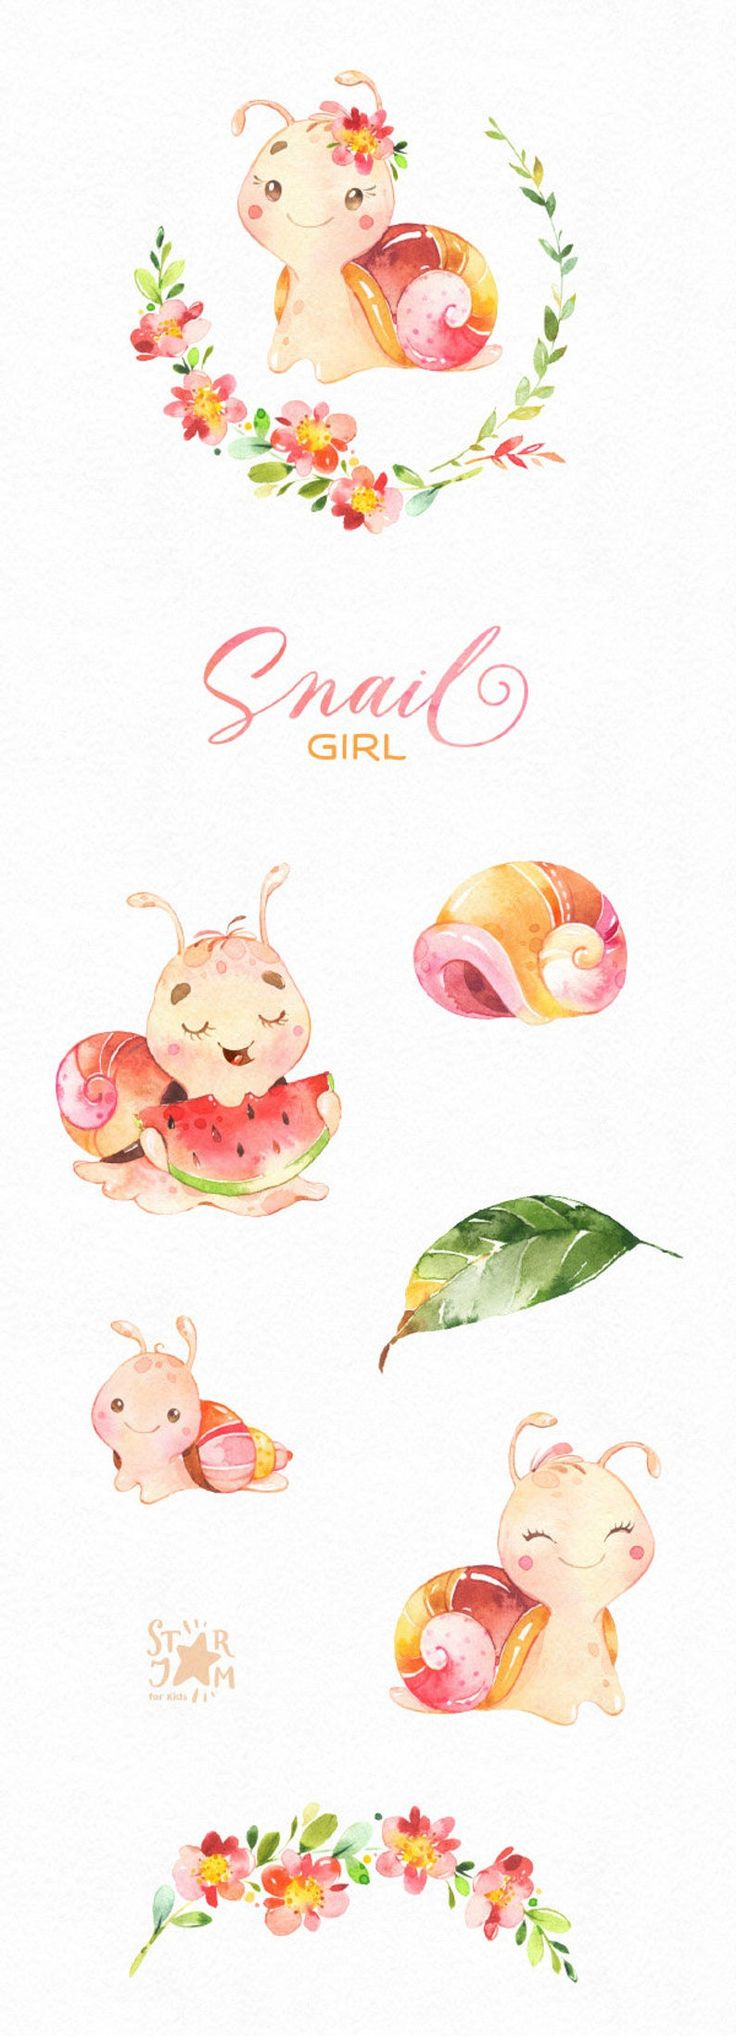 Snail Girl. Watercolor little animal clipart, baby, flowers, shell, cute, funny, pink, wreath, birth